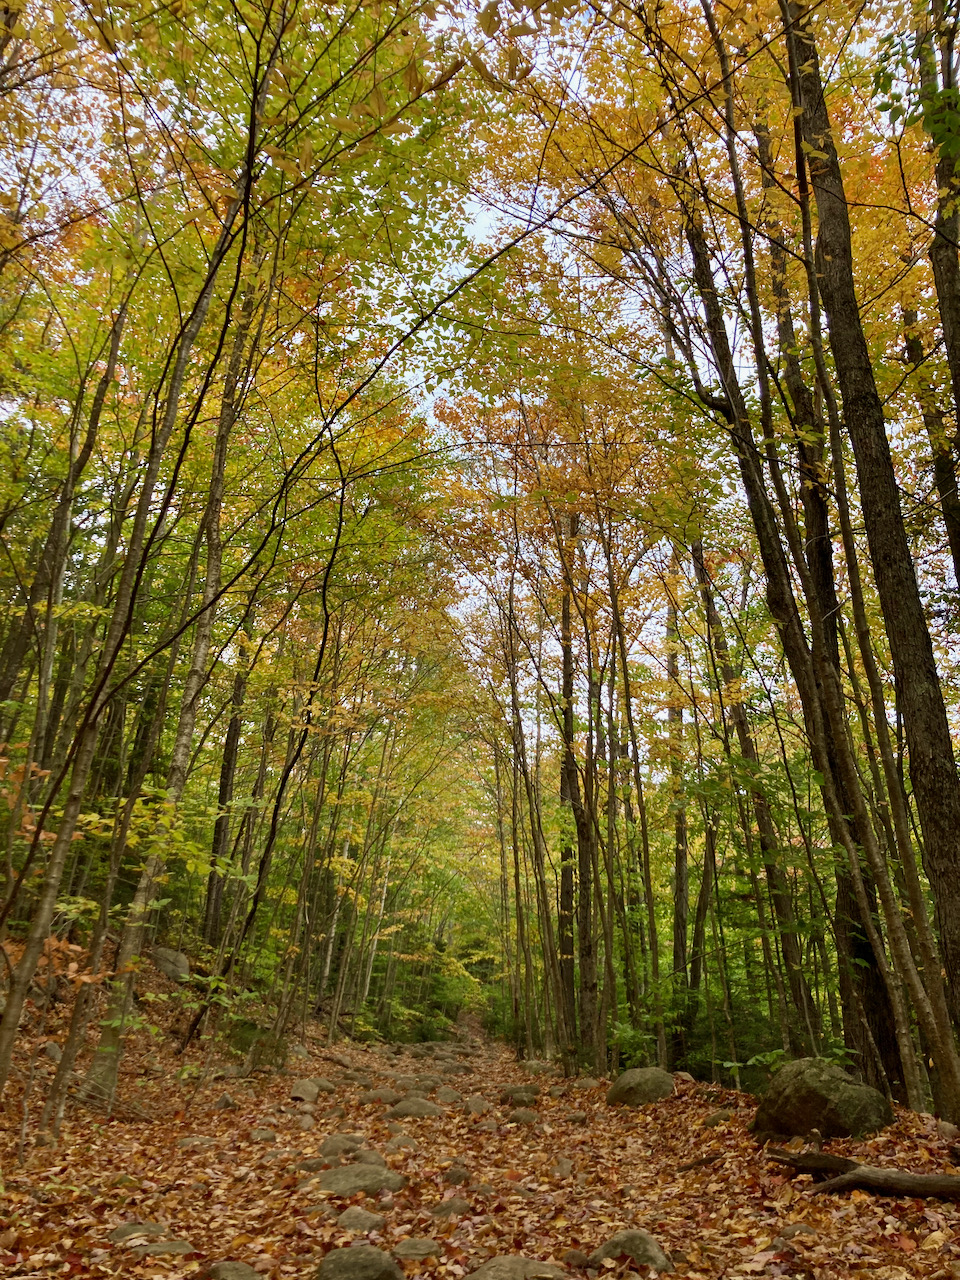 Trees with yellow and orange leaves above forest trail.